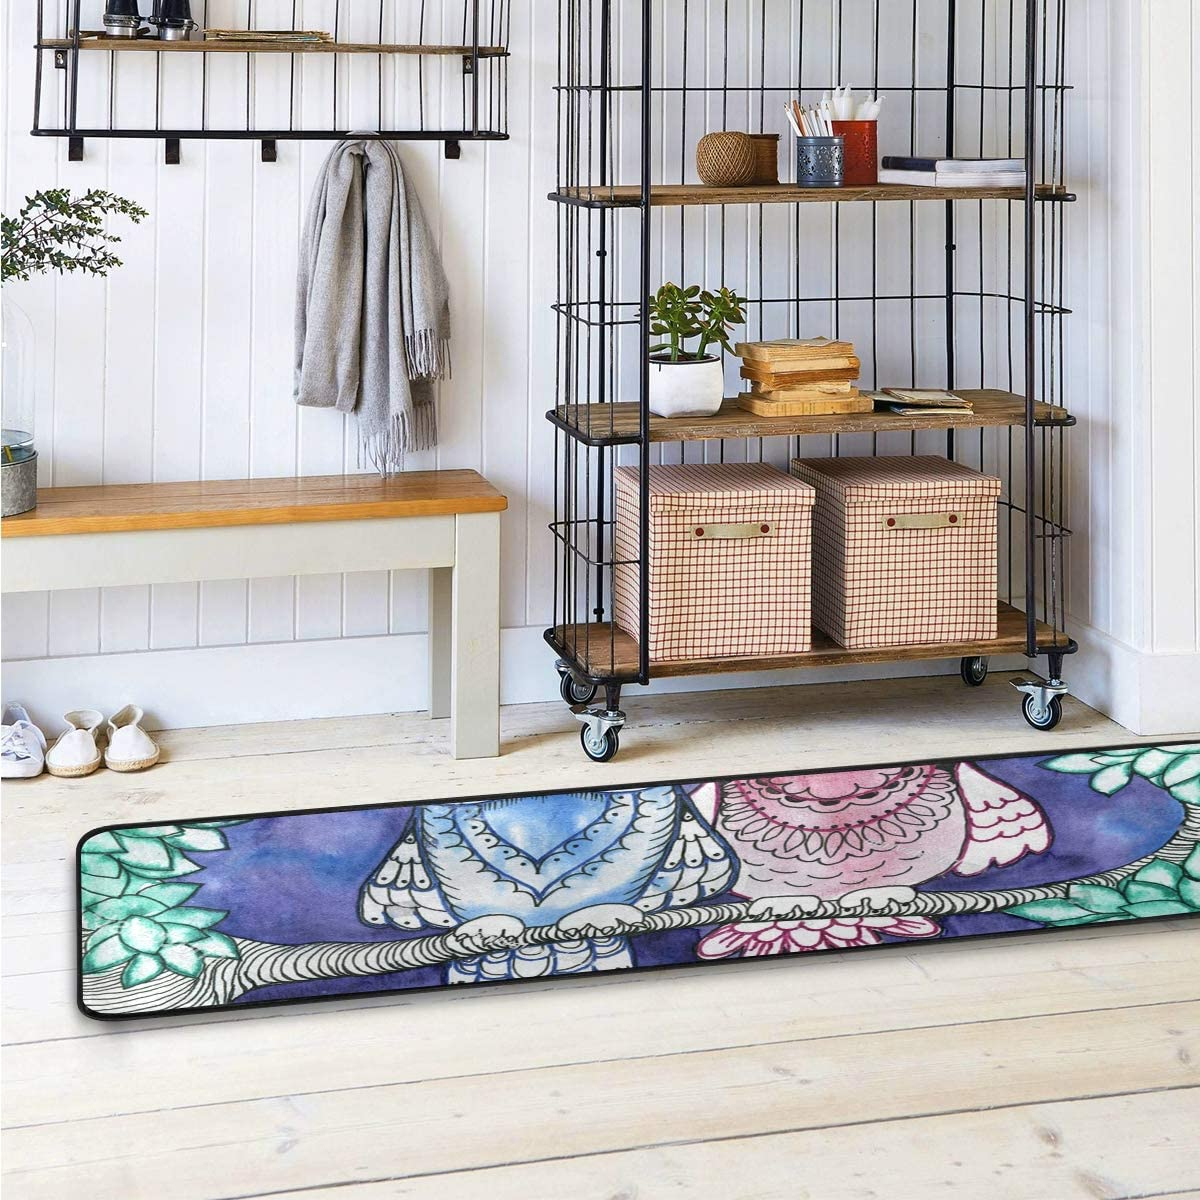 Zev Blue Fish Metal Garden Benches Regarding Widely Used Amazon: Slhfpx Area Rug Runner Painting Owl Bird Tree (View 16 of 30)